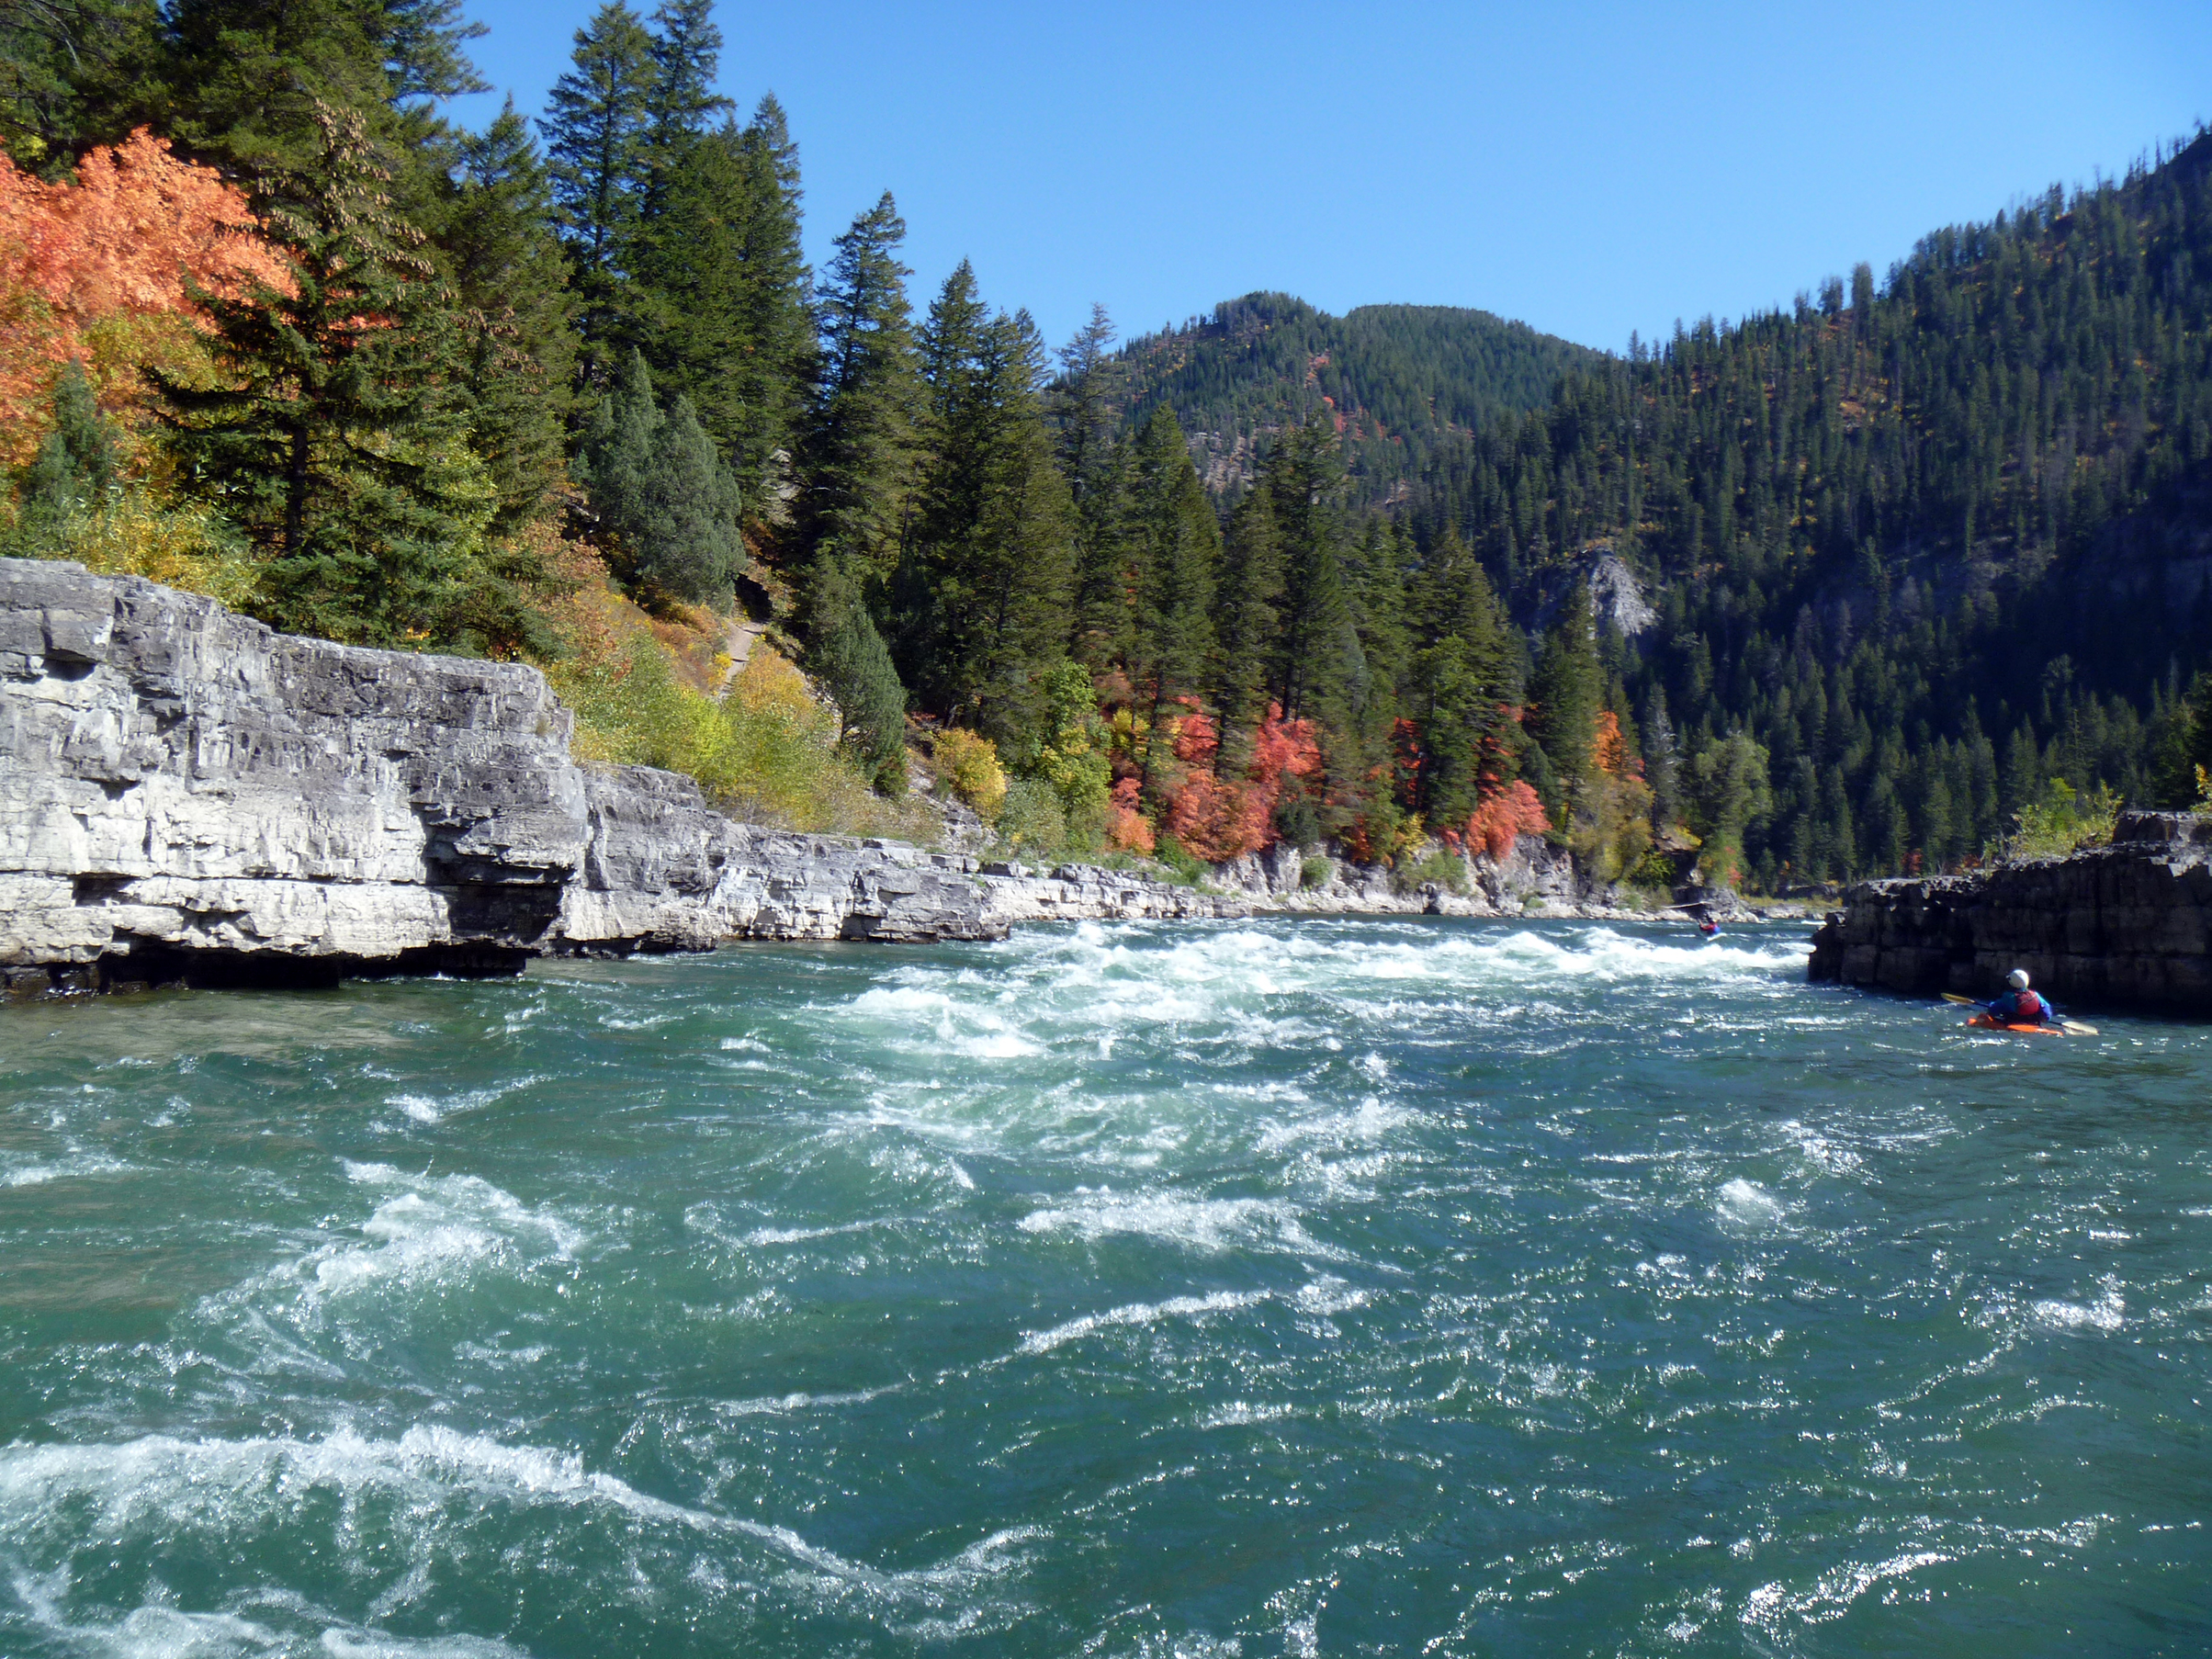 A kayaker floats the snake river through rapids with cliff facings on the river sides, fall colored trees and mountains in the background.